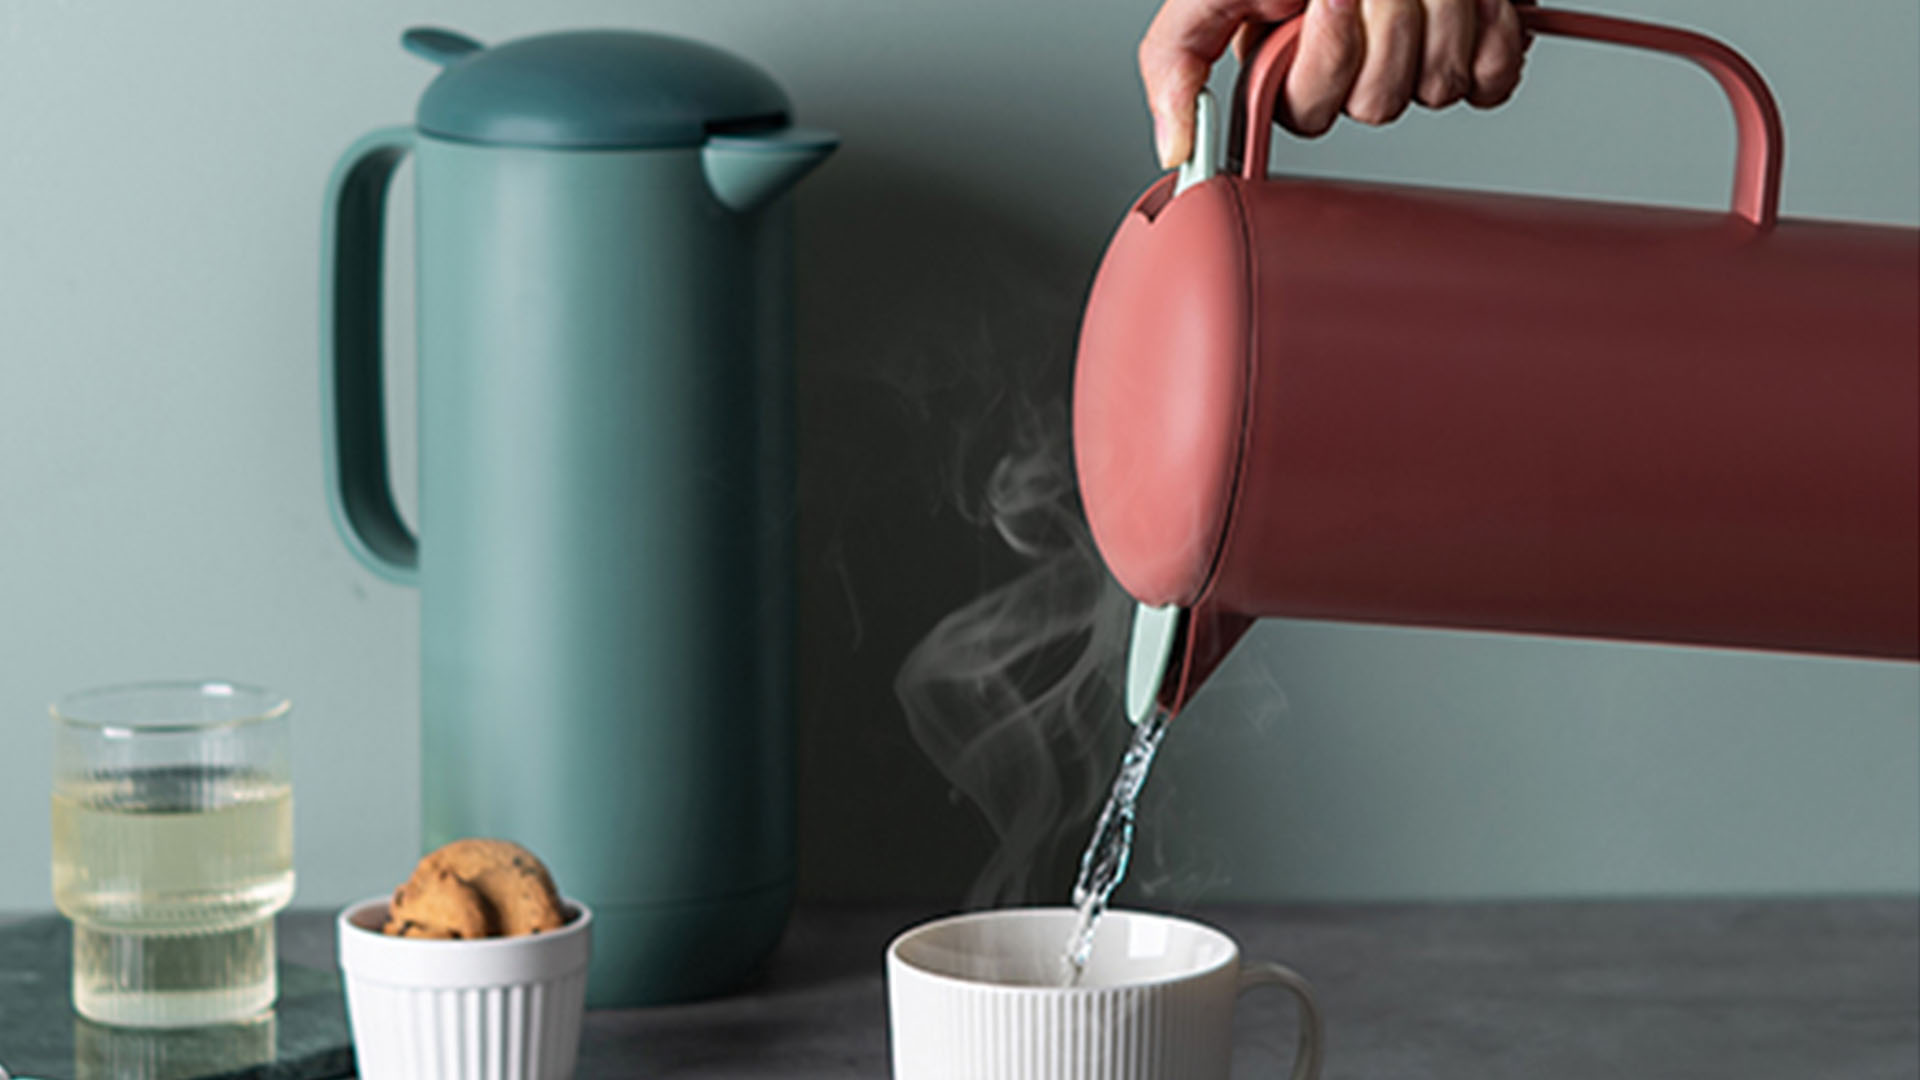 Vaco Thermos 11 - Sneapy